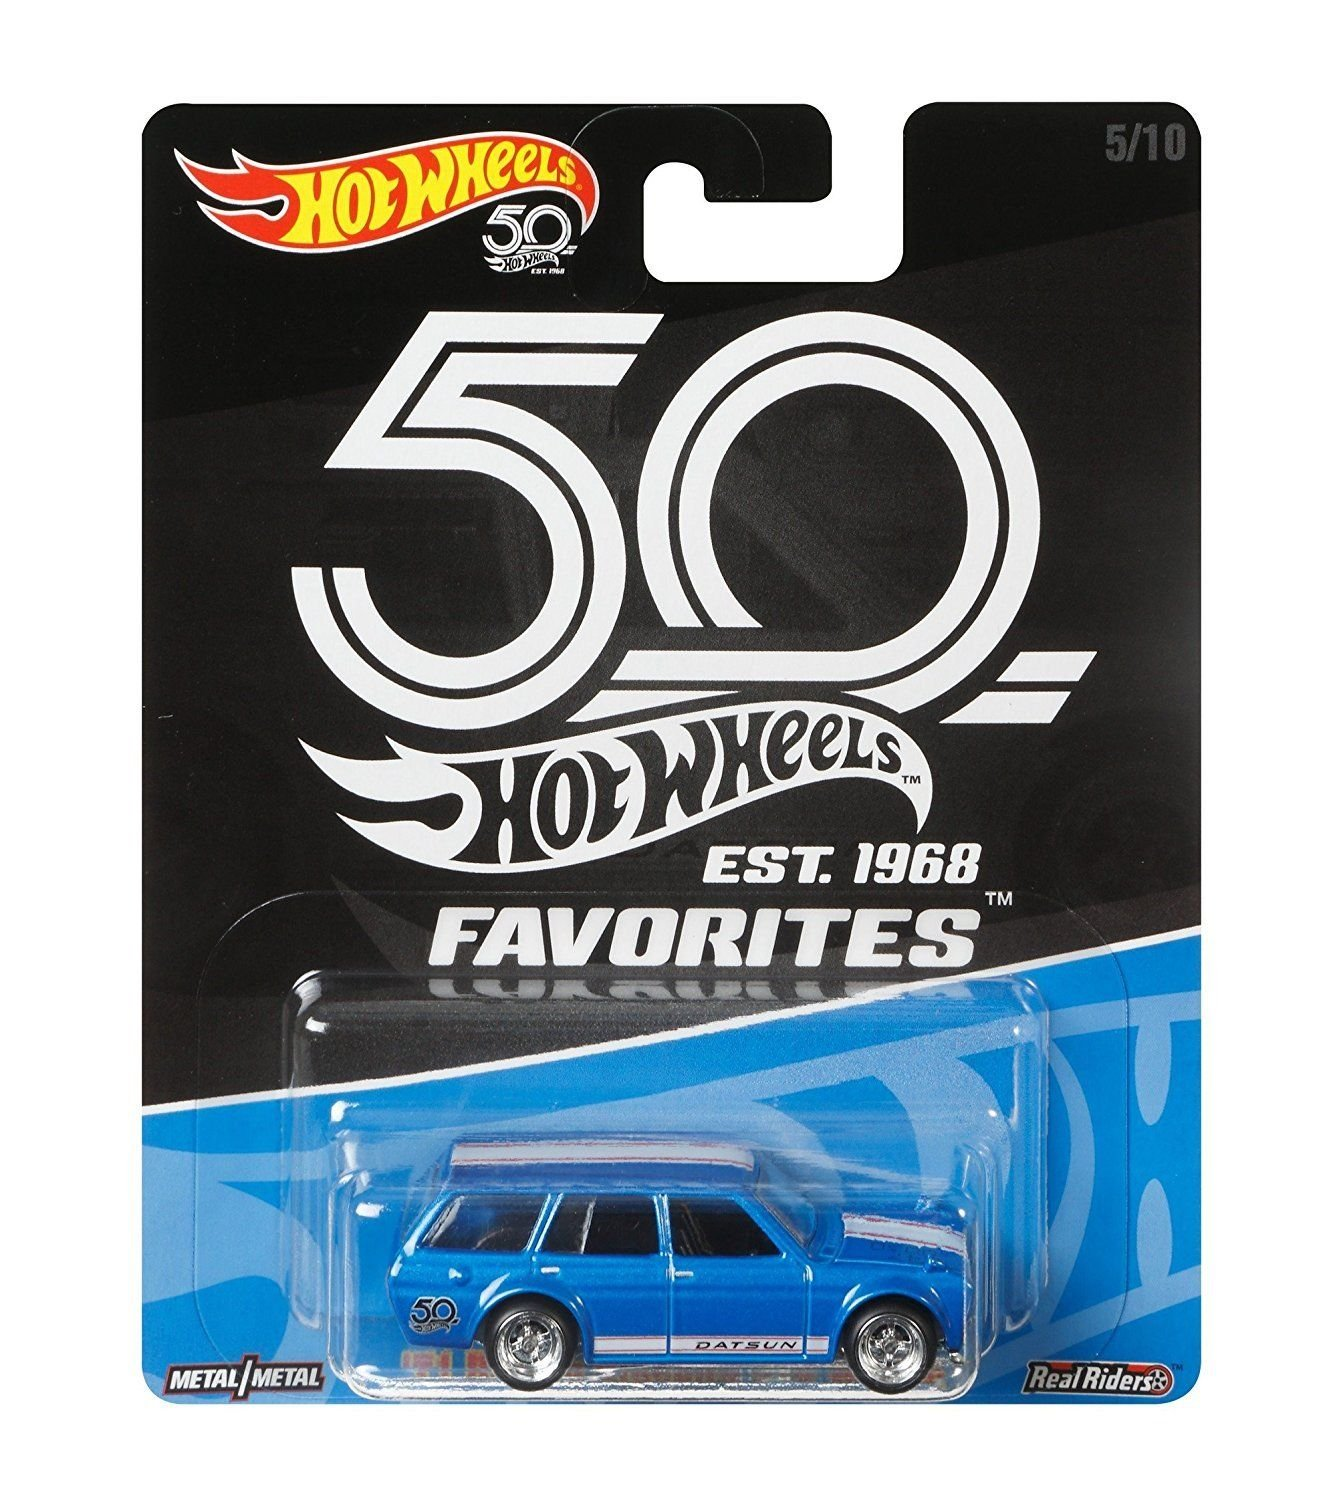 Amazon.com: 2018 Hot Wheels 50th Anniversary Favorites Series Set of 5 1/64 Scale Diecast Cars: Toys & Games